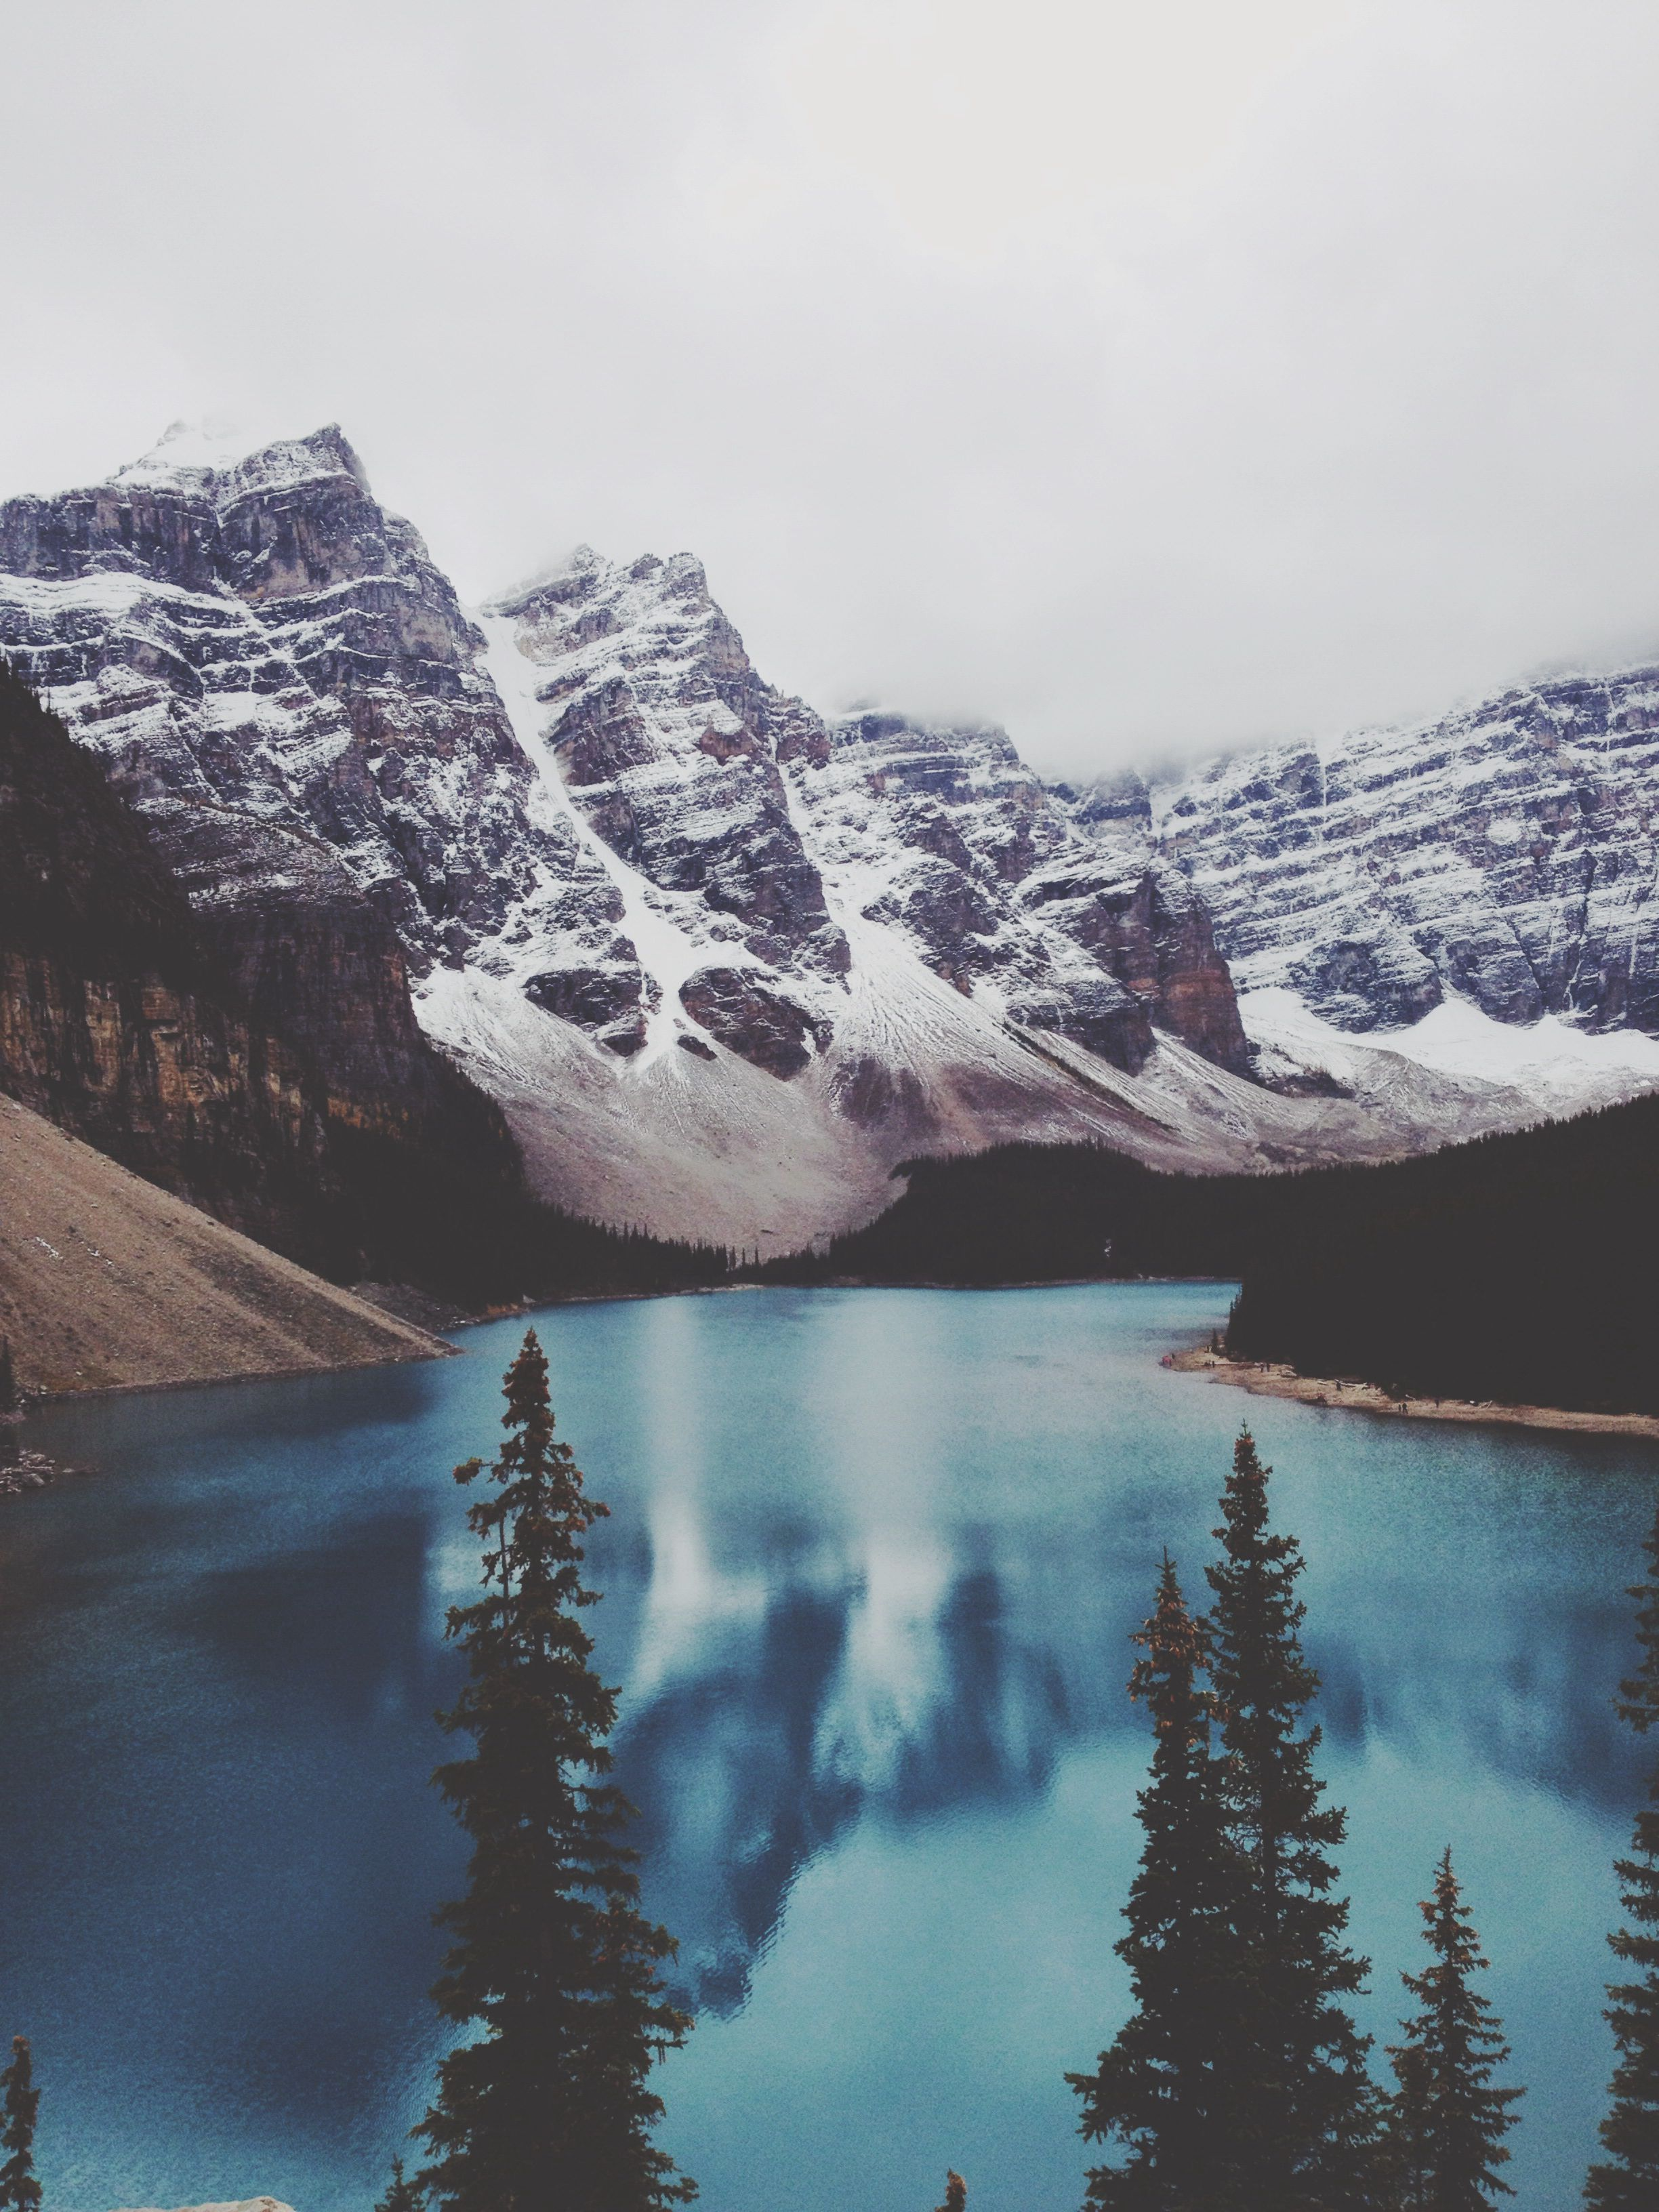 The Icefields Parkway Banff Jasper National Parks Rocky Mountains Canada Photographic Print Gavin Hellier Allposters Com Scenery Adventure Is Out There Places To Travel